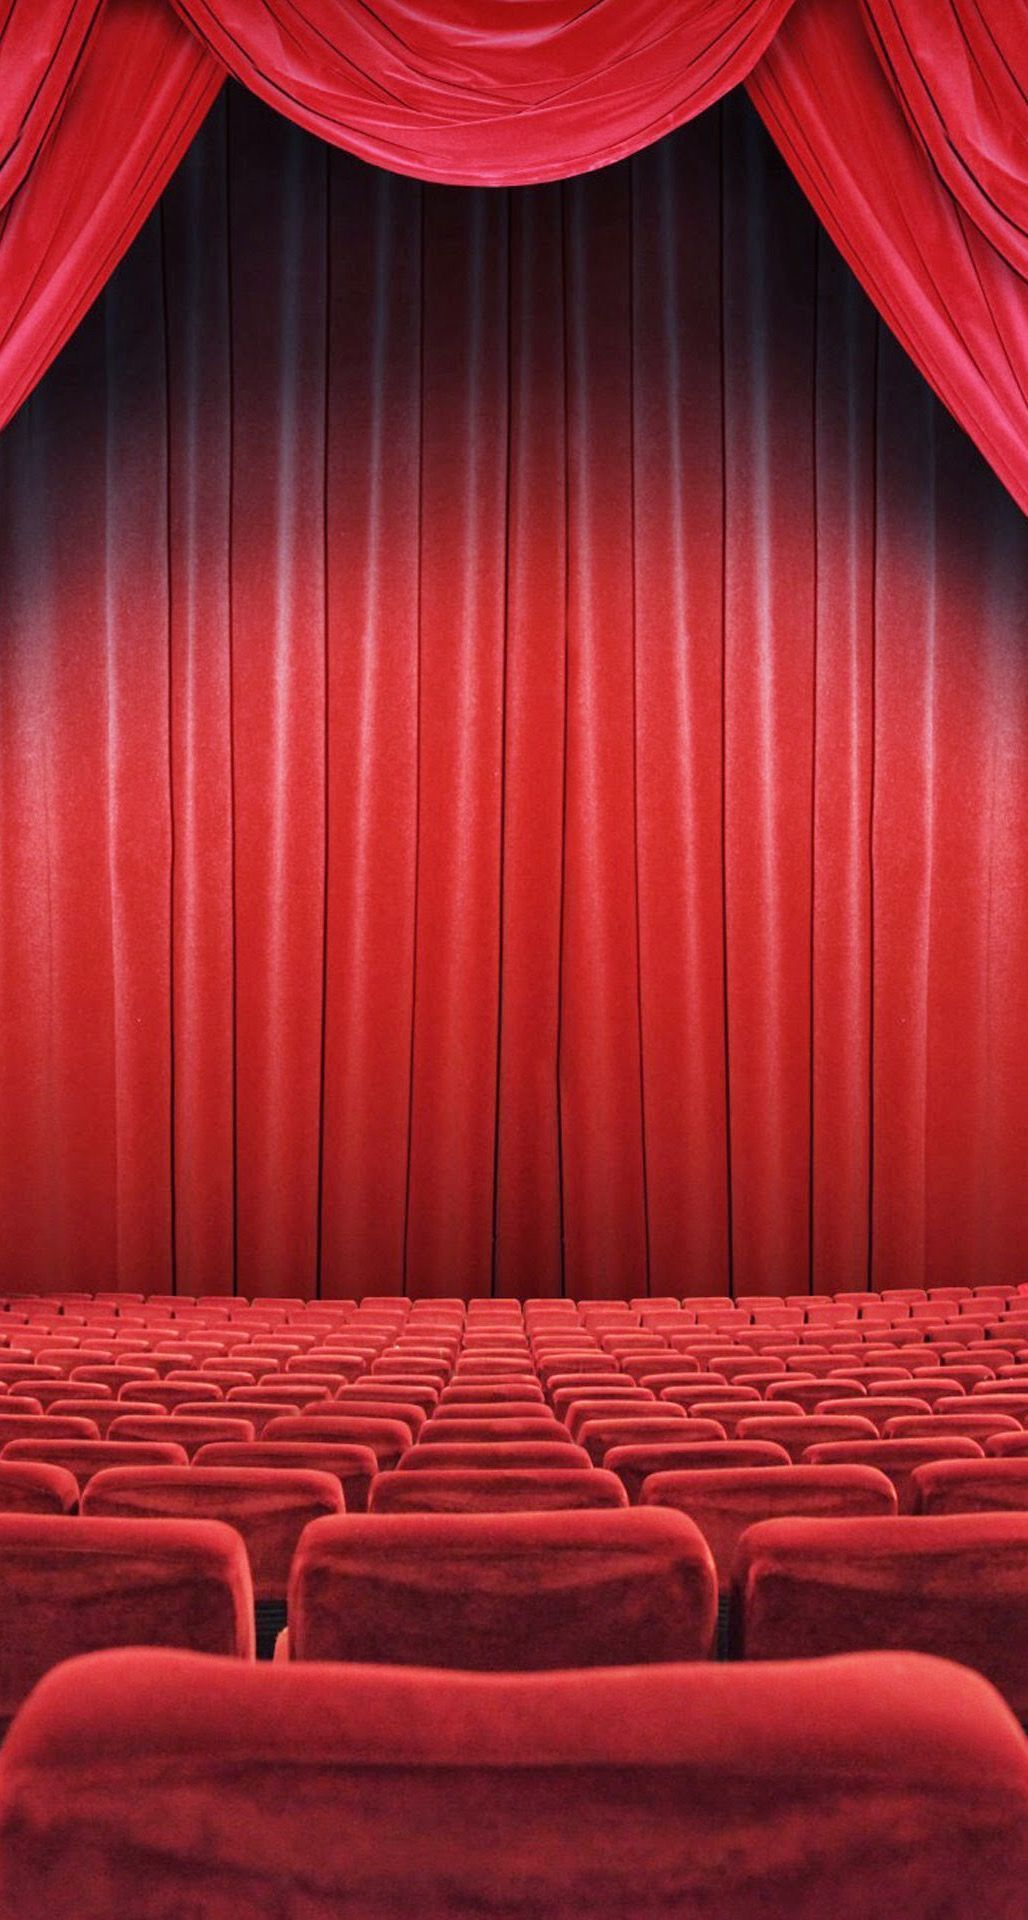 Theater Wallpaper 41 Movie Theater Wallpapers On Wallpaperplay Theater Backgrou Backgrou Movie Theater Movie Theater Red Curtains Theater Seating